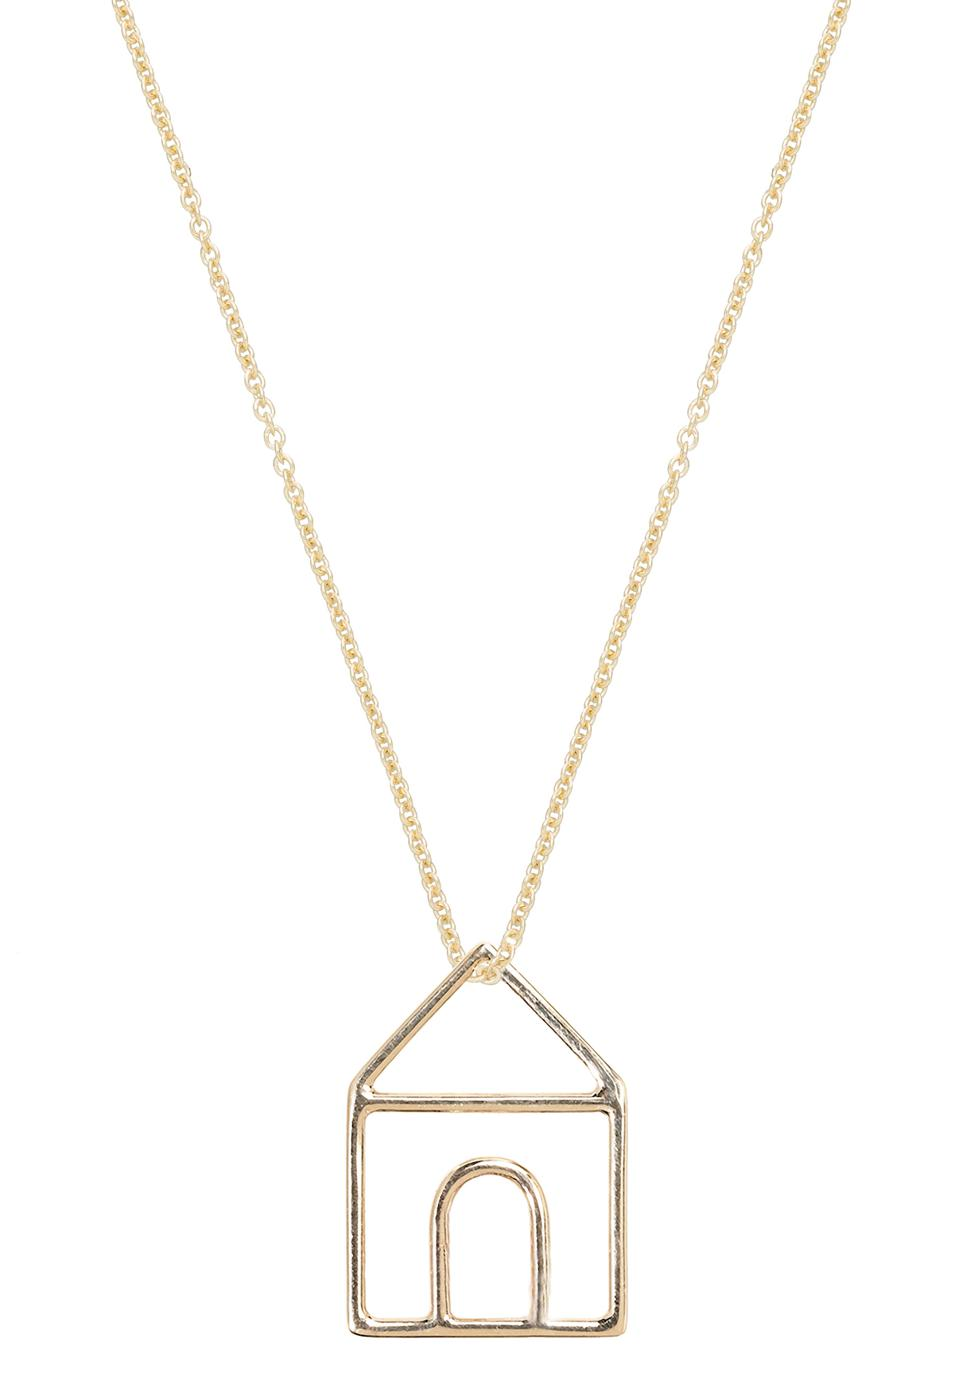 Aliita's iconic Casita Necklace brings home to wherever you are.